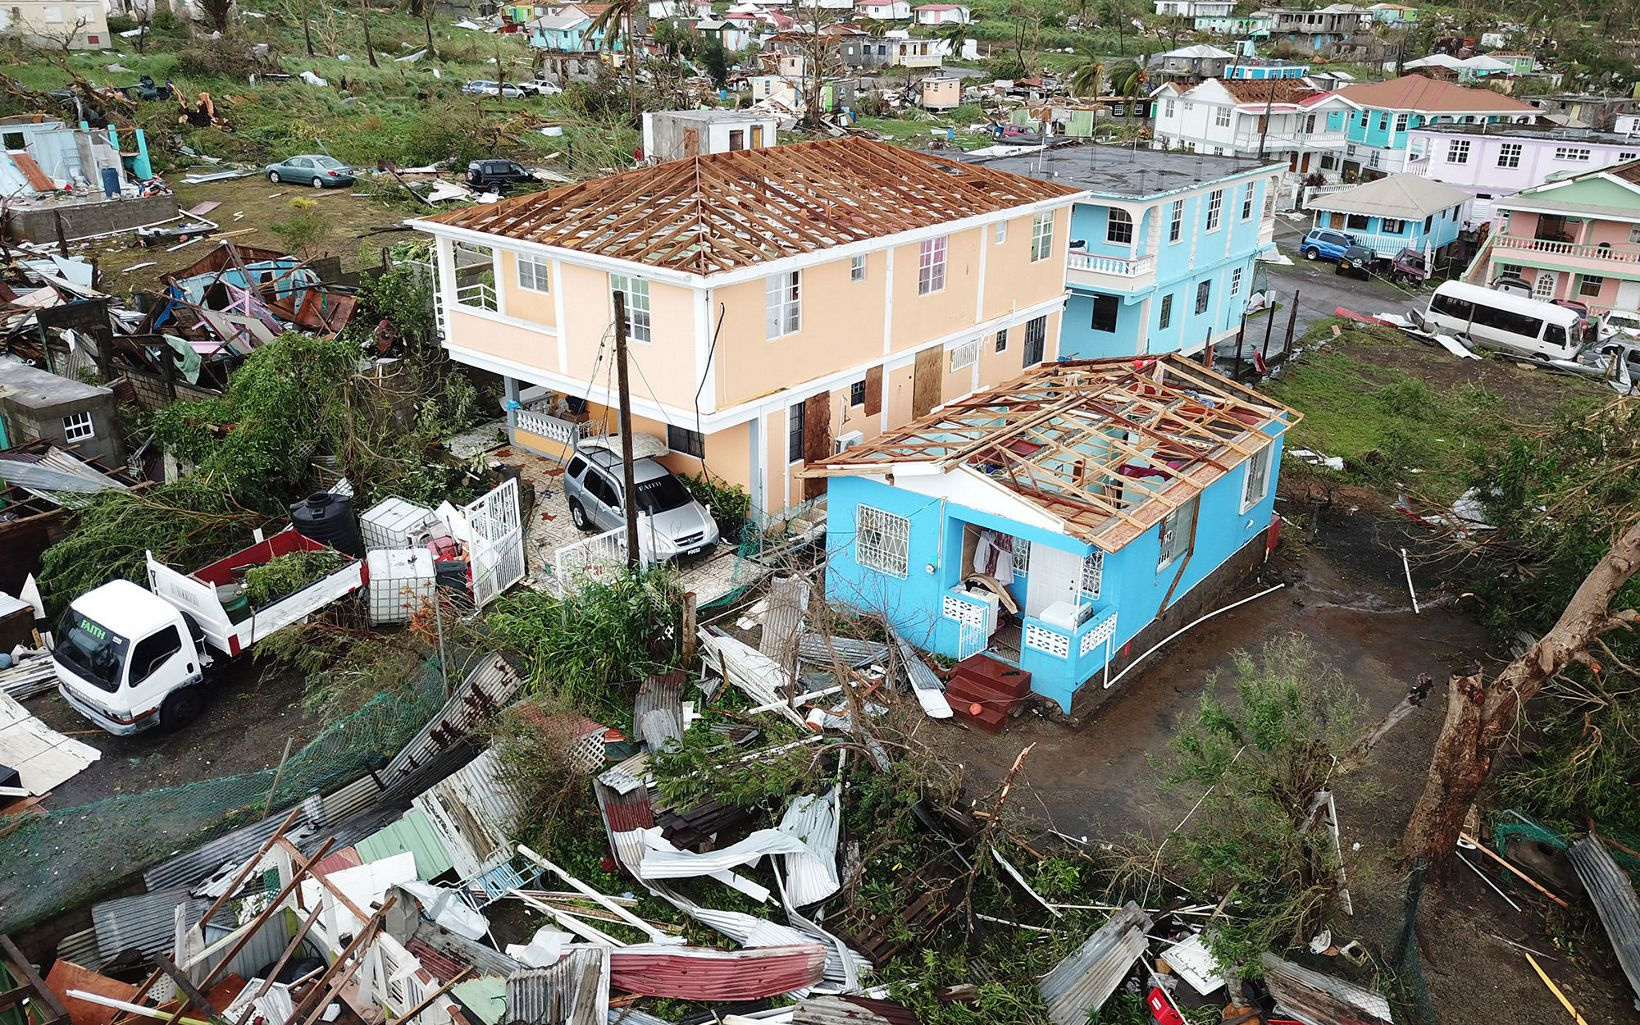 Houses missing roofs in Dominica after Hurricane Maria